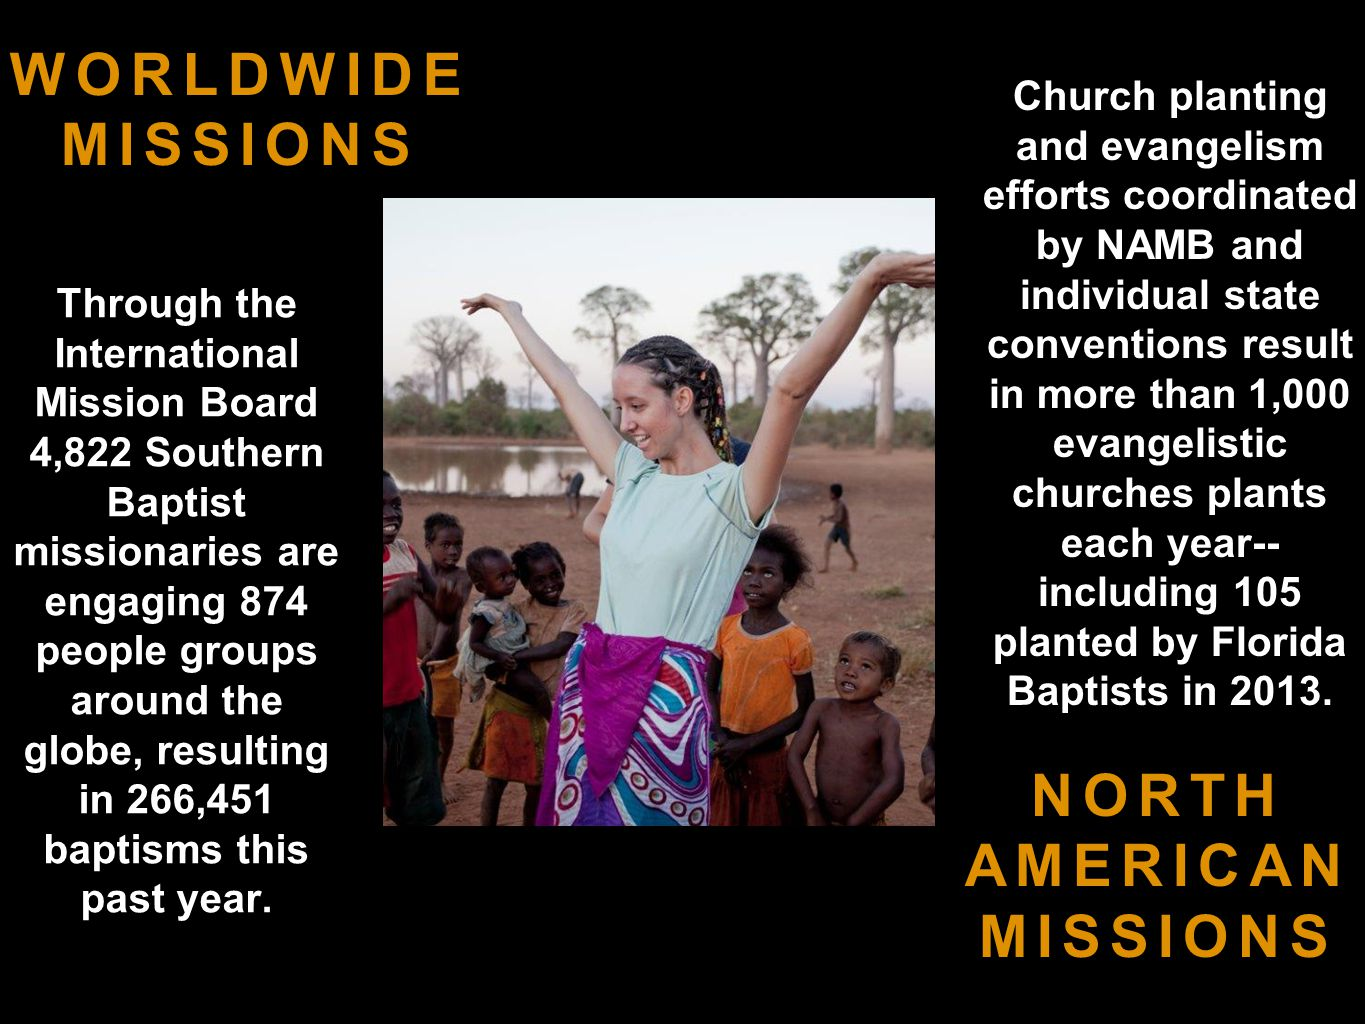 NORTH AMERICAN MISSIONS WORLDWIDE MISSIONS Through the International Mission Board 4,822 Southern Baptist missionaries are engaging 874 people groups around the globe, resulting in 266,451 baptisms this past year.